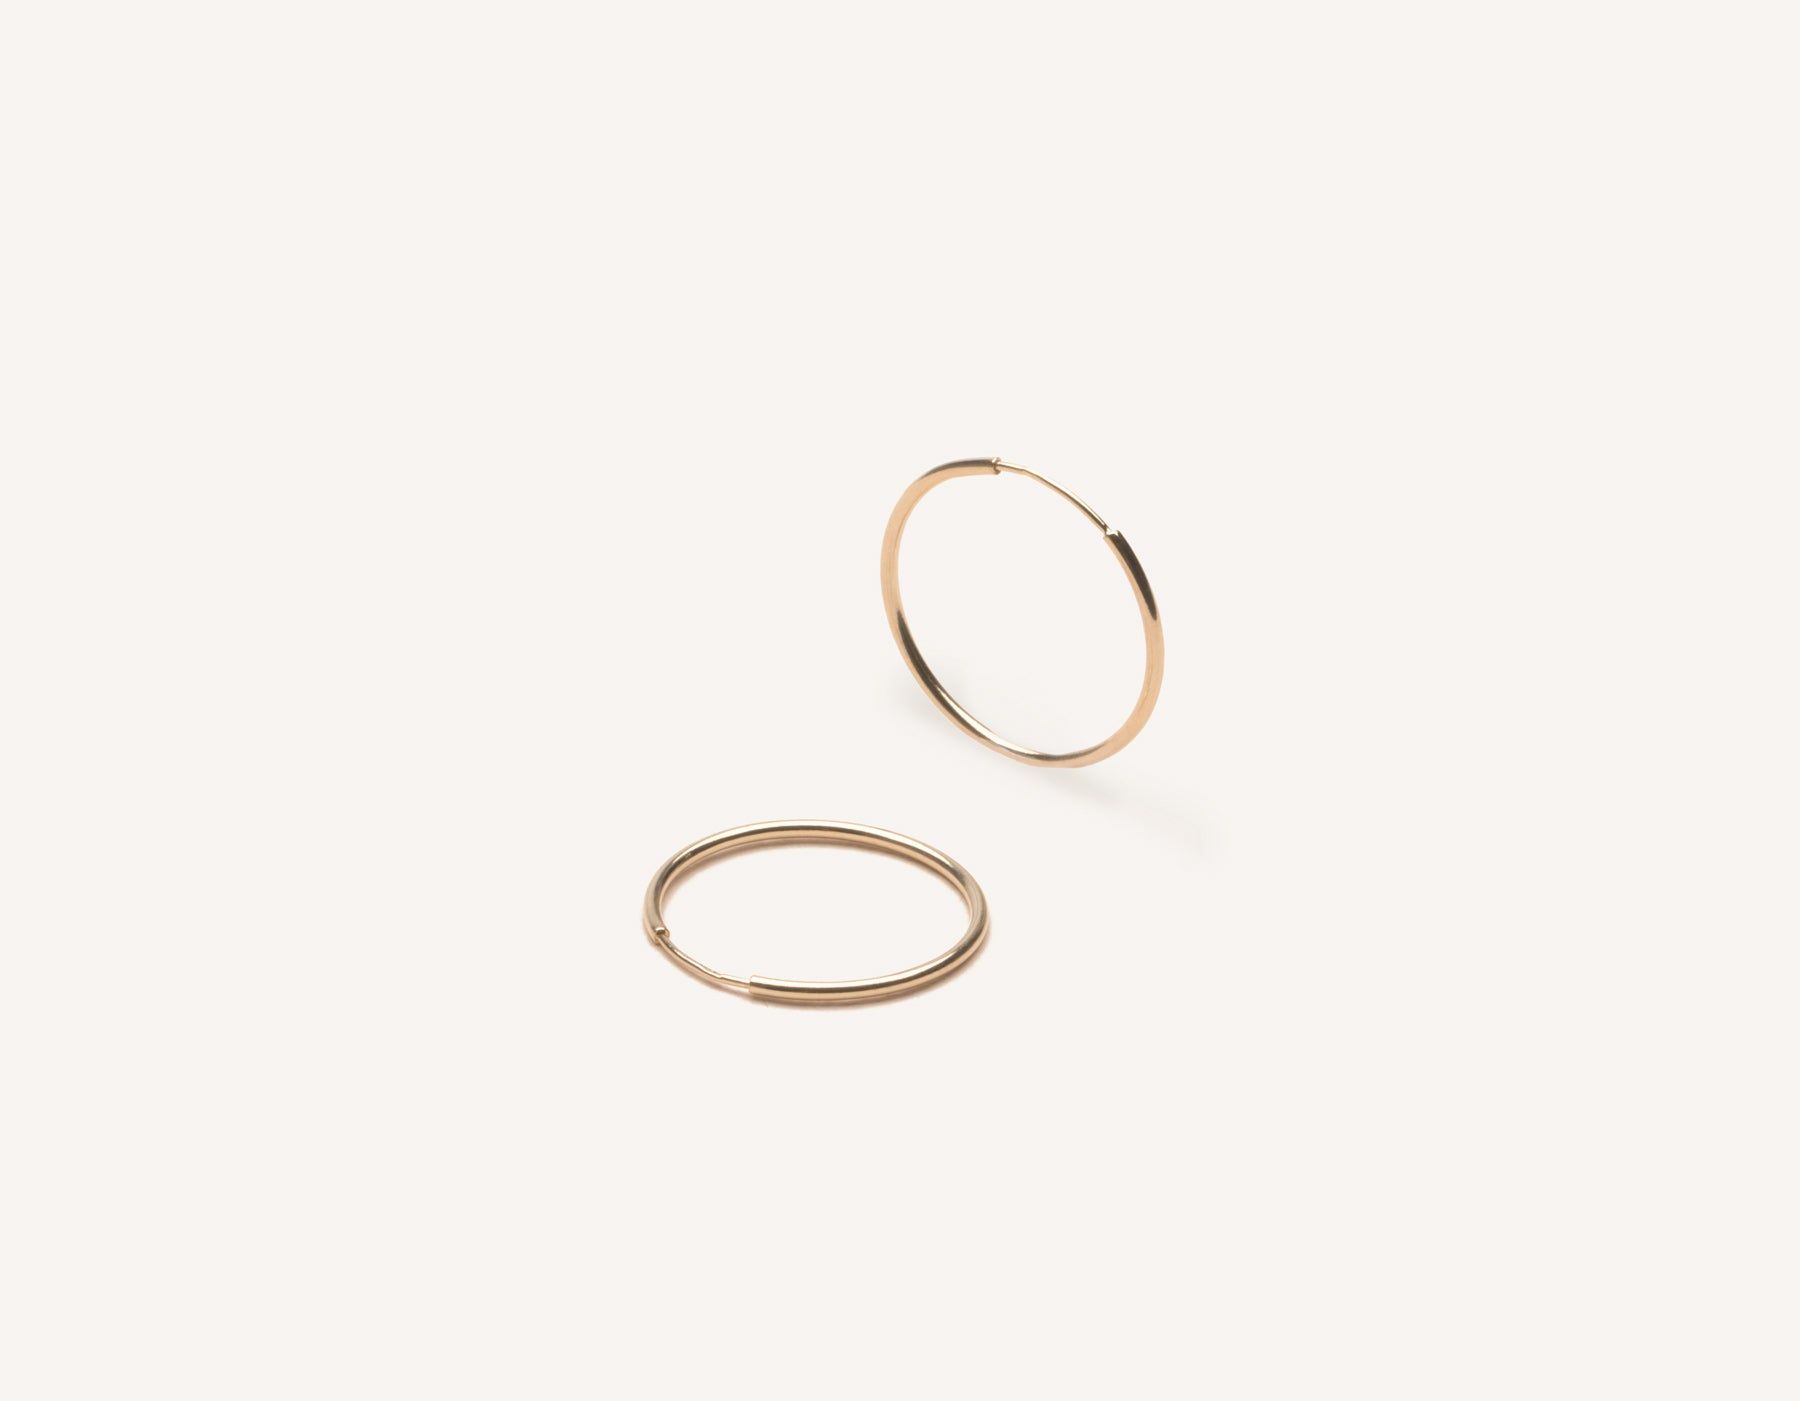 Simple classic thin Medium Lightweight Hoops 14k solid gold Vrai and Oro minimalist jewelry, 14K Rose Gold